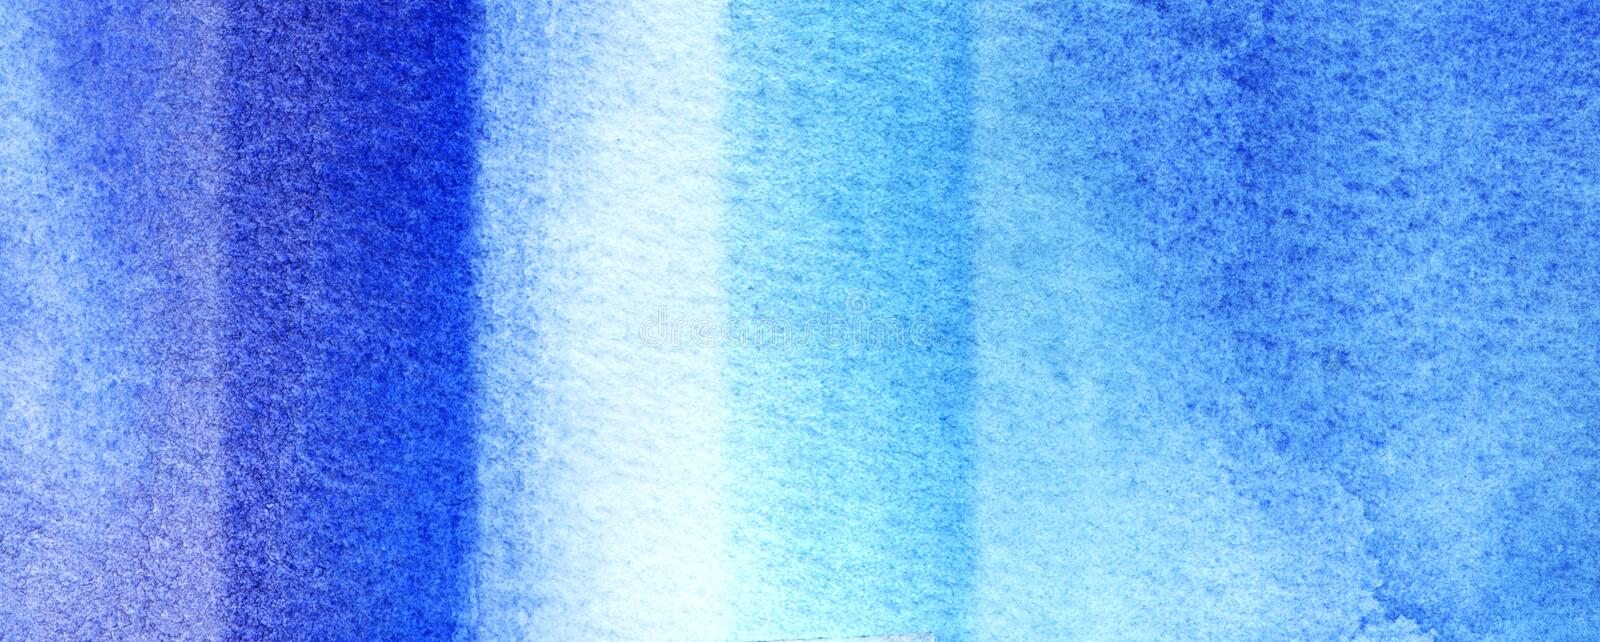 Abstract watercolor background. Geometric vertical lines. Texture of blue watercolor. Cobalt granulation. Flowing spots of blue stock image